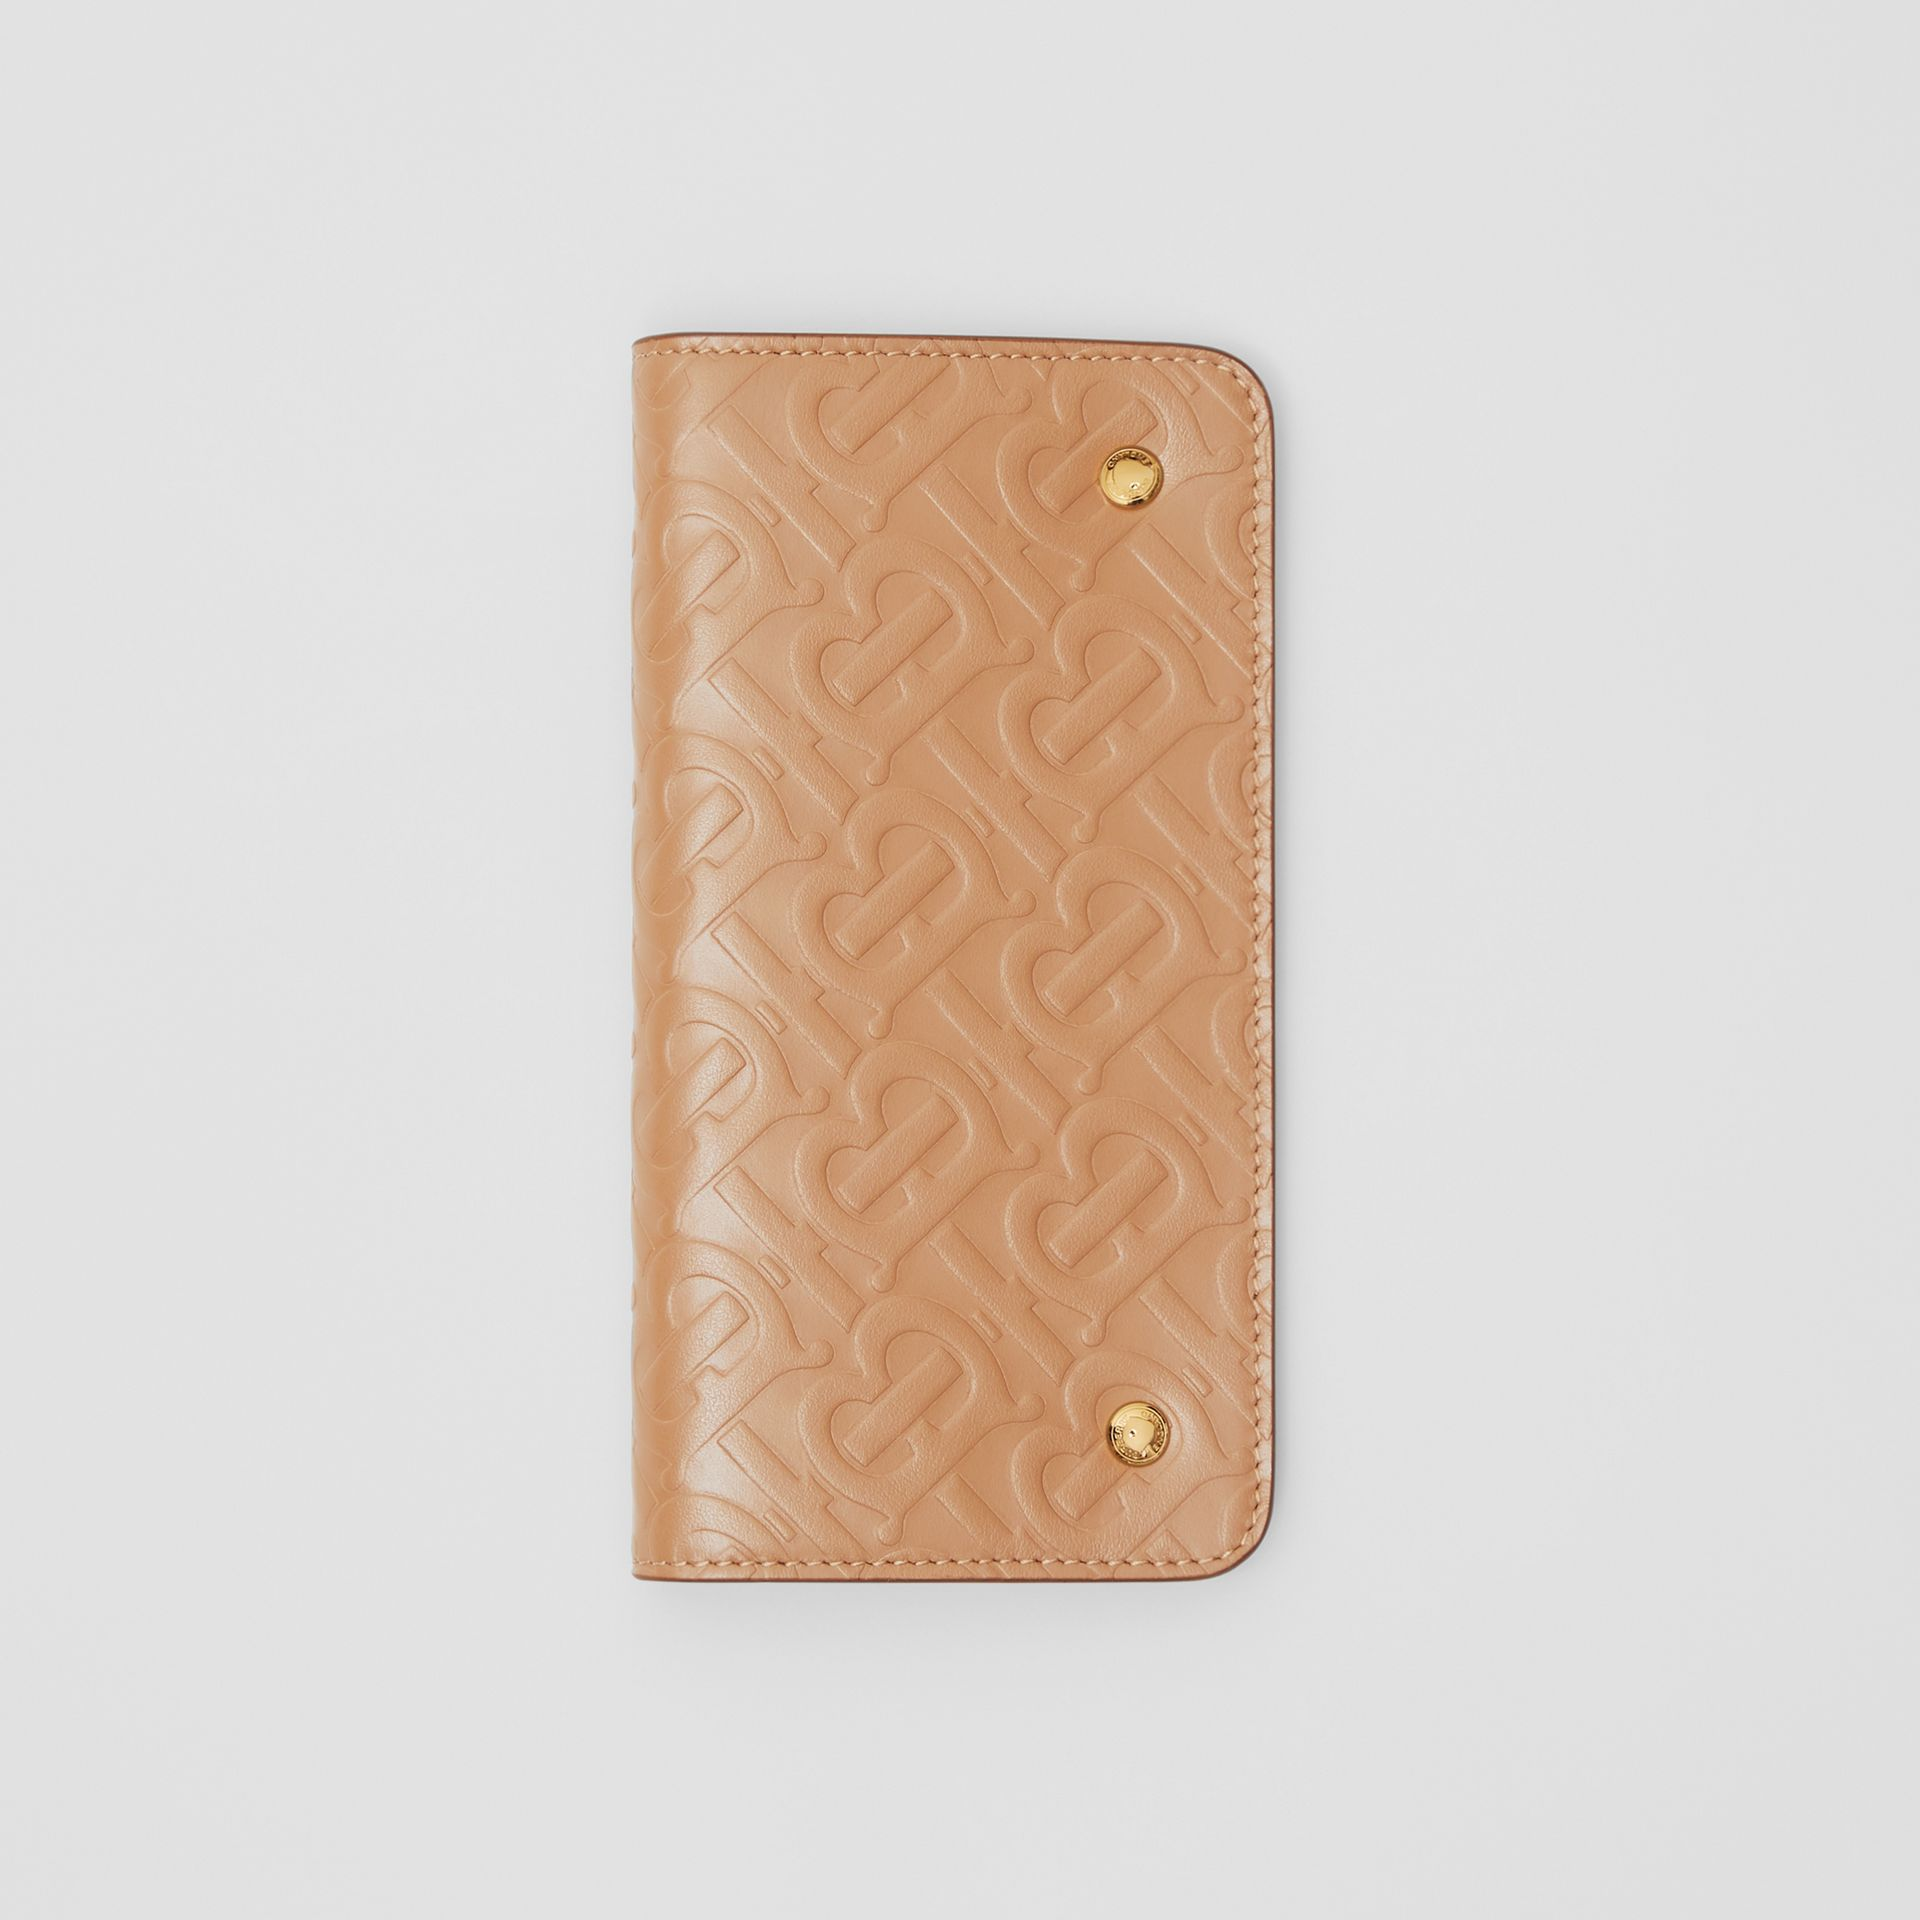 Monogram Leather Phone Wallet in Light Camel - Women | Burberry - gallery image 2